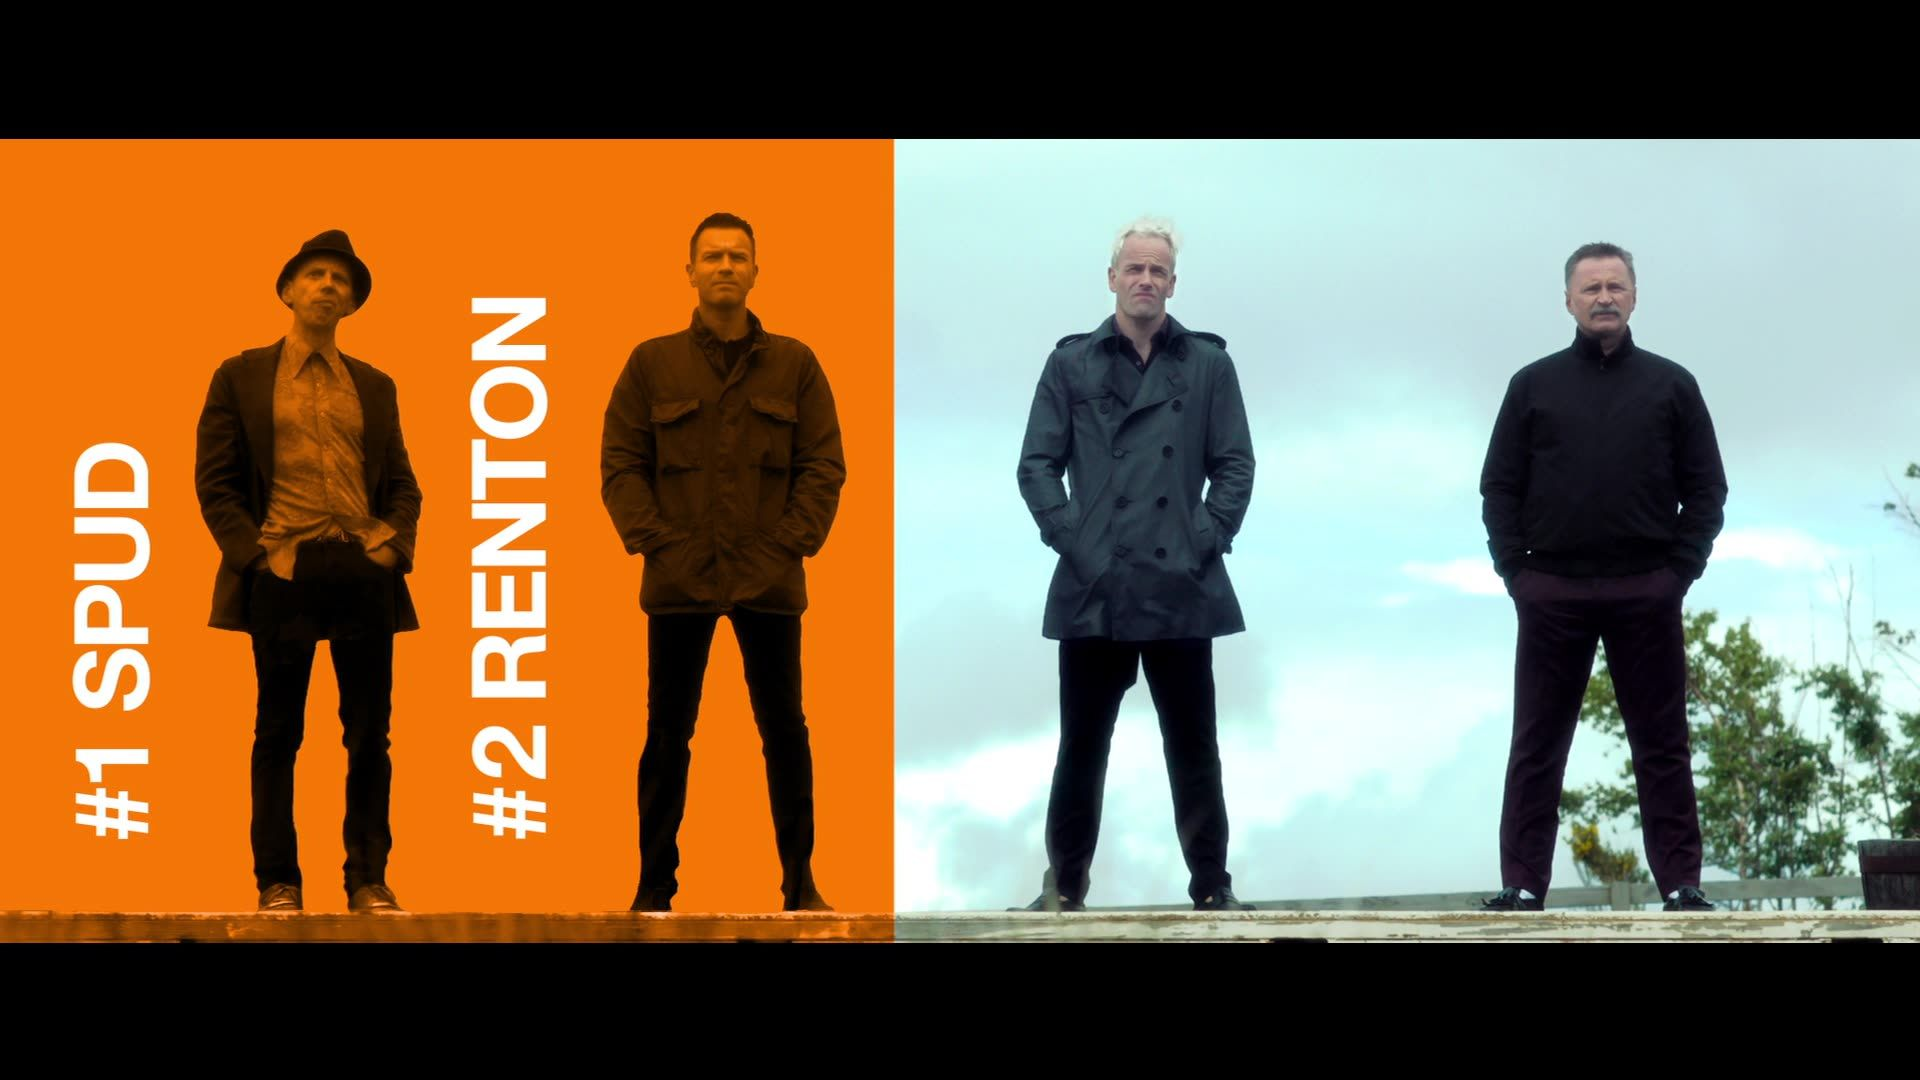 T2: Trainspotting 2 widescreen wallpapers